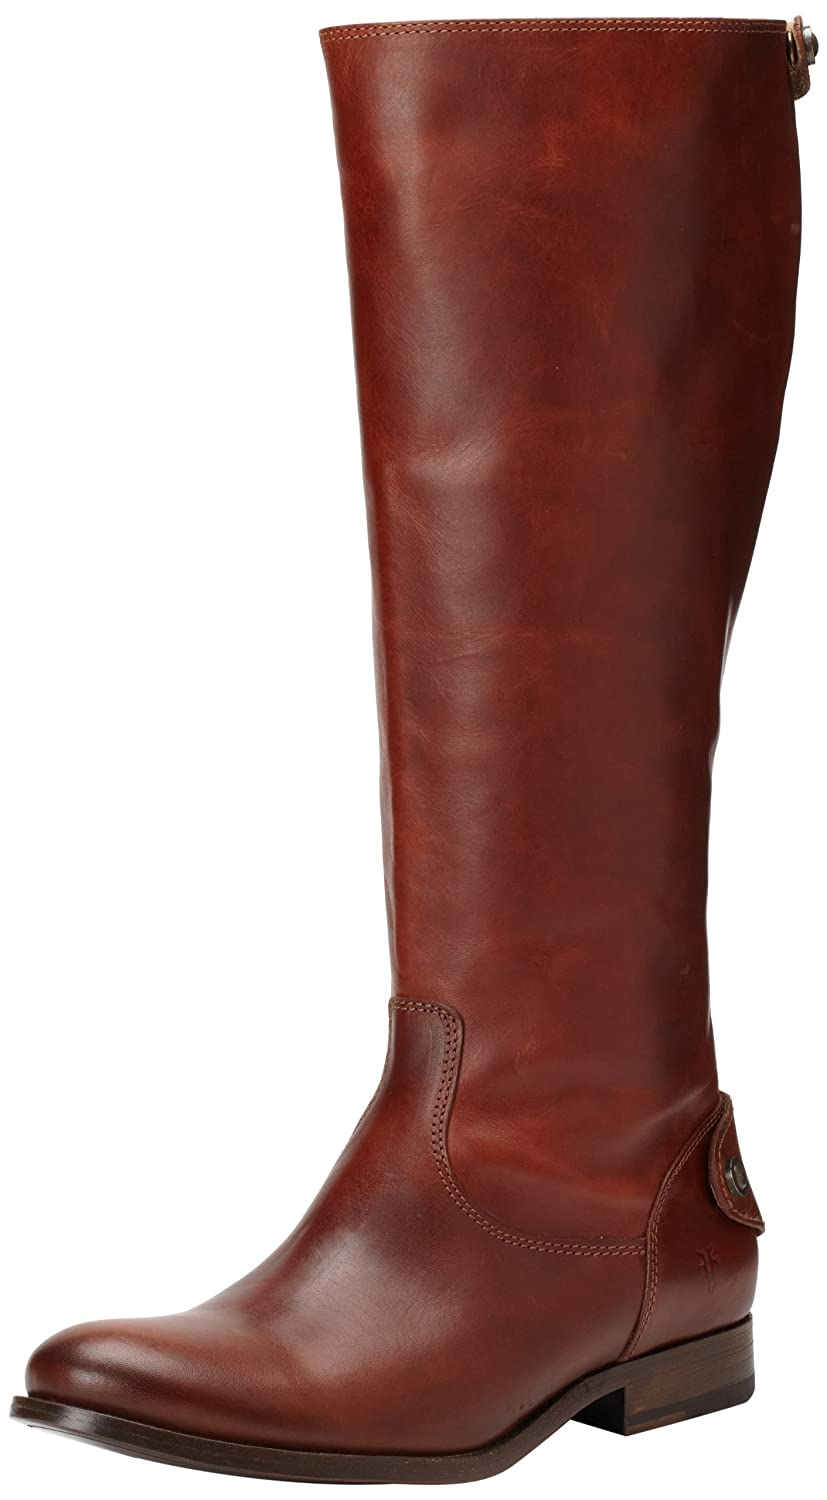 FRYE Women's Melissa Button Back-Zip Boot B005917CYC 7 B(M) US|Cognac Smooth Vintage Leather-76431